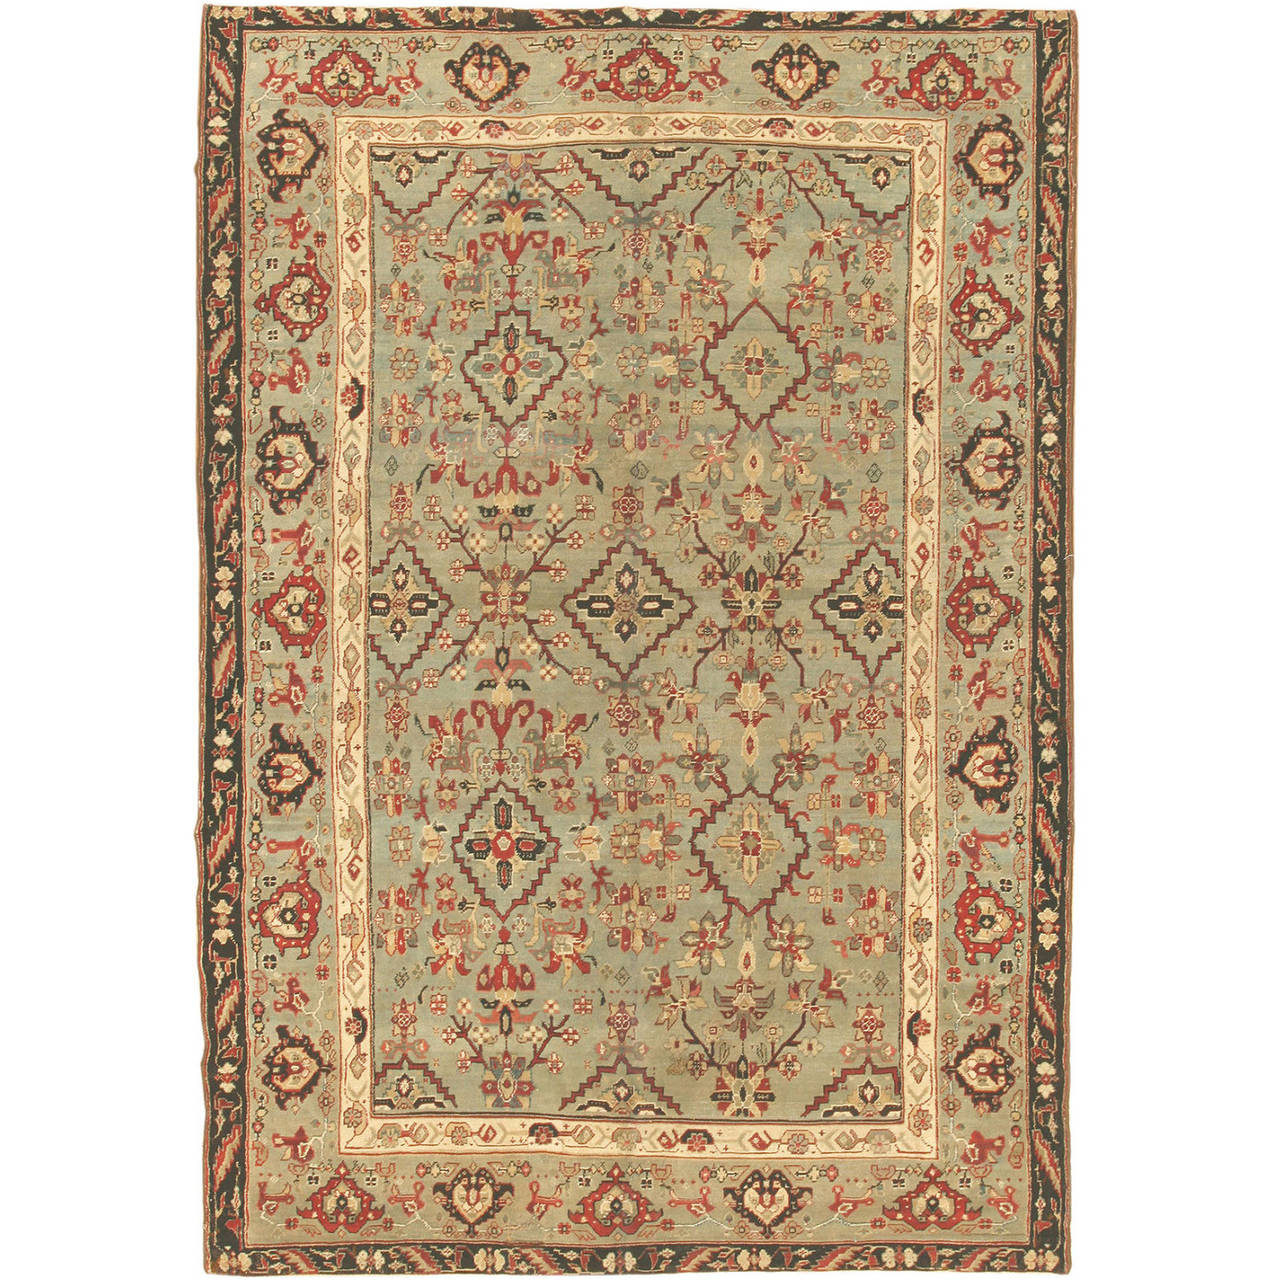 Antique Indian Agra Rug For Sale At 1stdibs: Lovely Antique Indian Agra Rug For Sale At 1stdibs